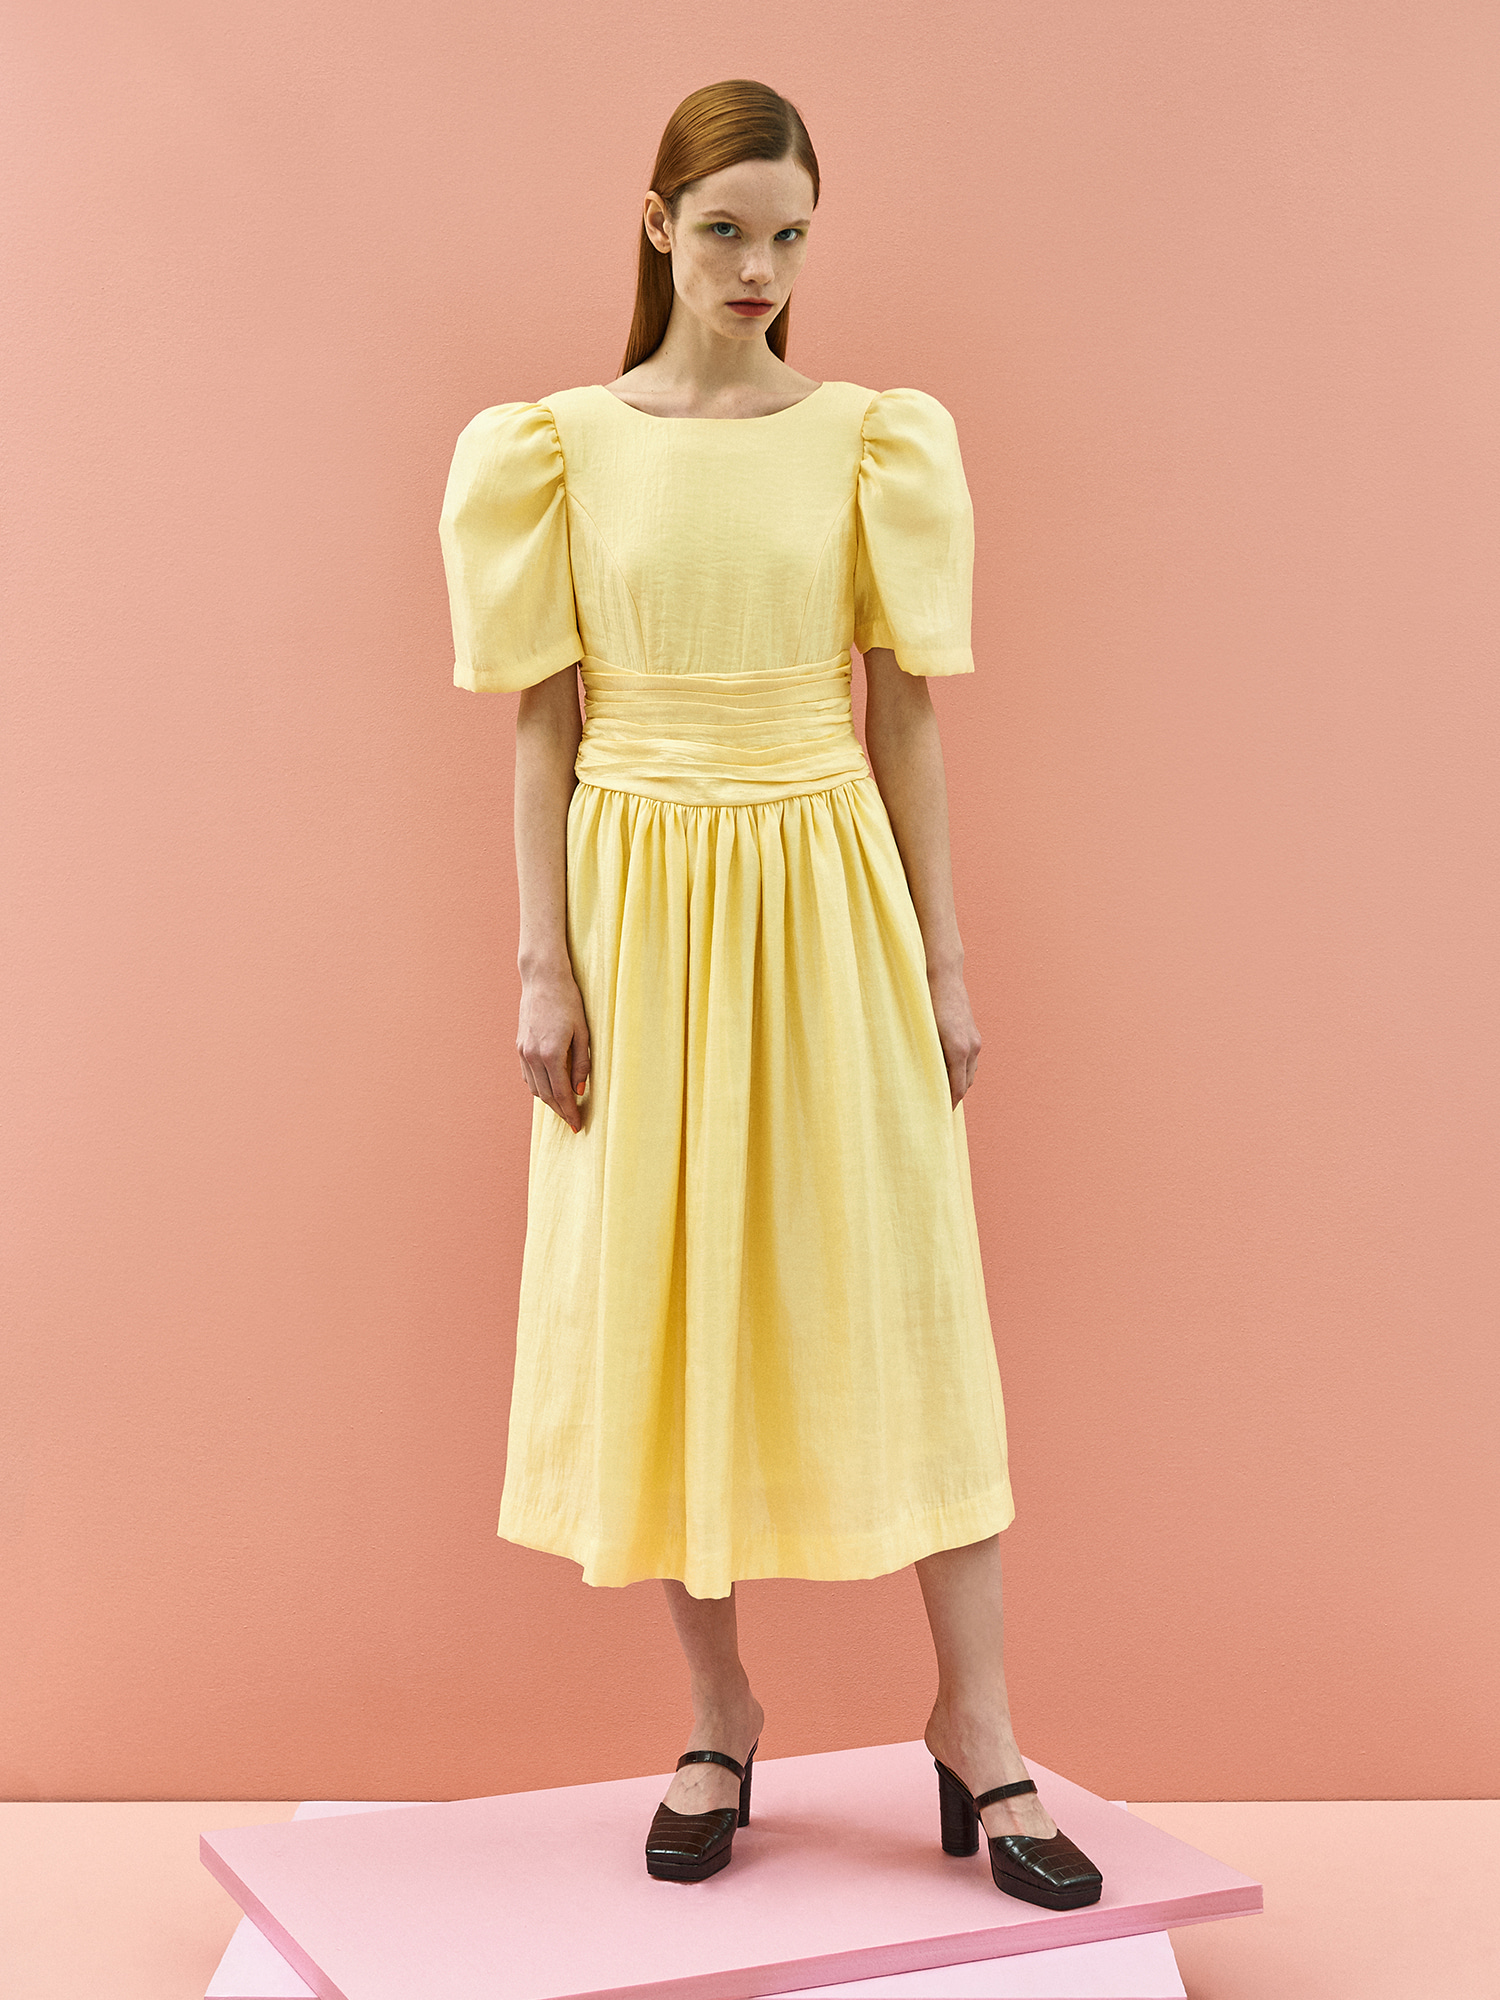 [미드세일 30%할인]Retro Ribbon Dress in Lemon